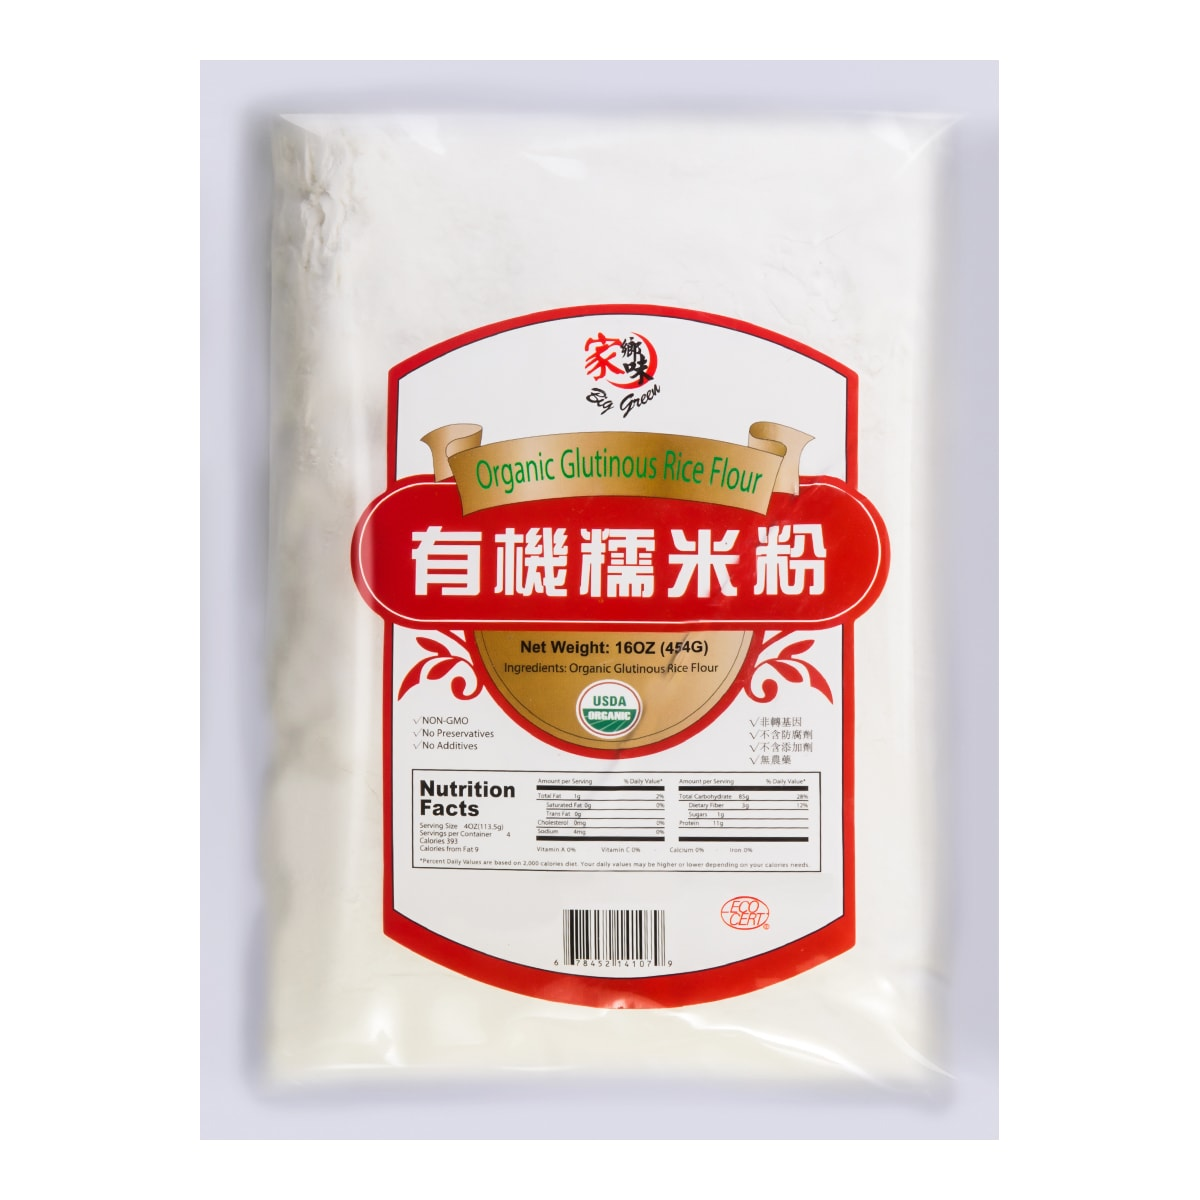 BIG GREEN Organic Glutinous Rice Flour 454g